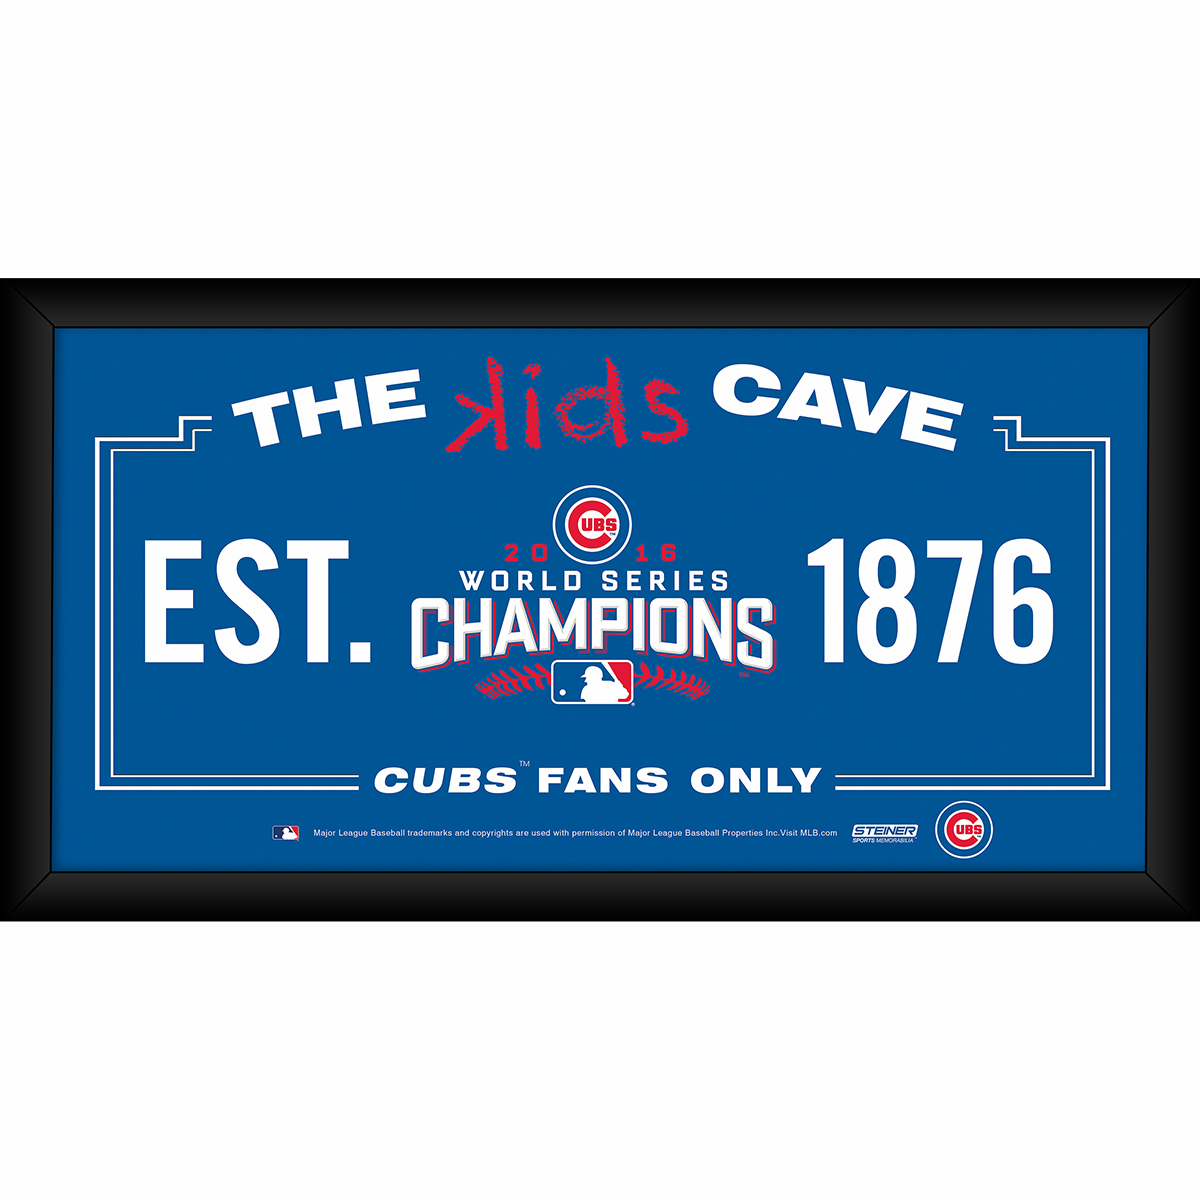 """Chicago Cubs 2016 World Series Champions Kid's Cave 10"""" x 20"""" Framed Sign by Steiner"""